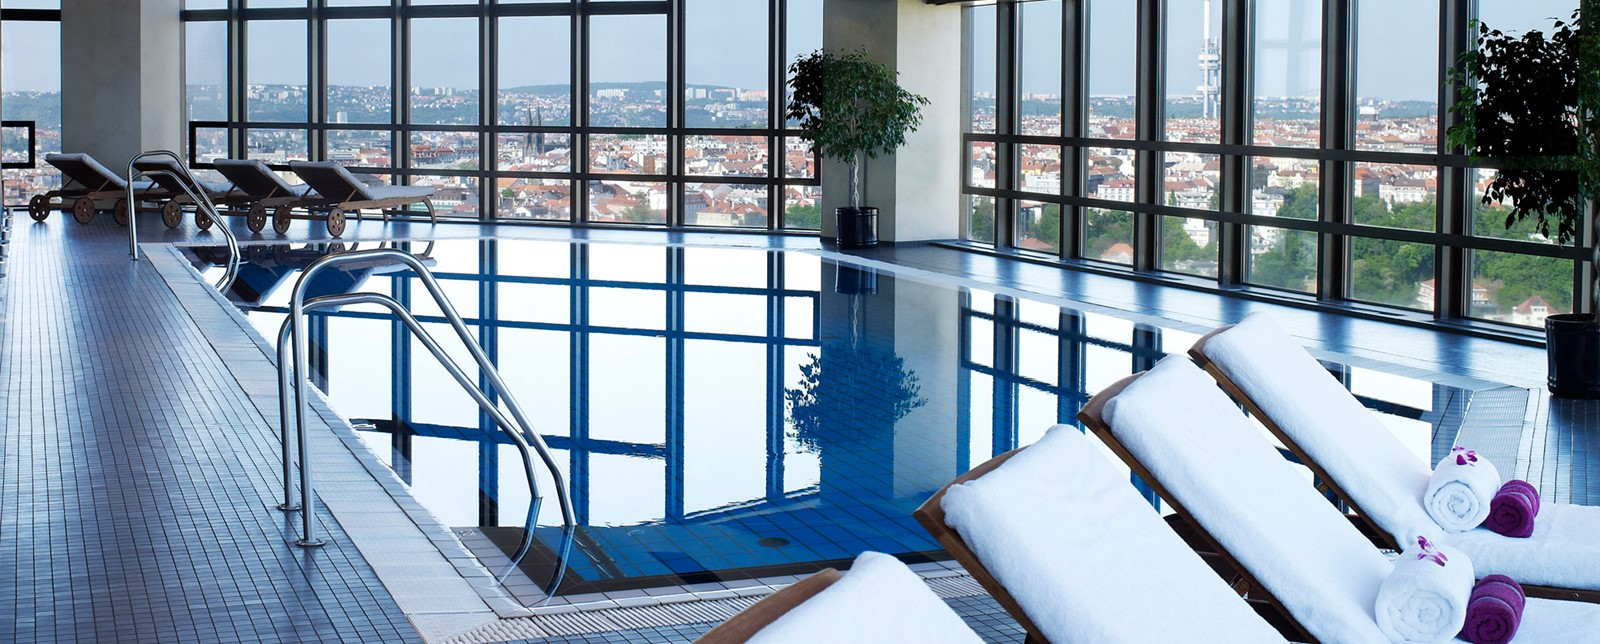 Corinthia Prague Swimmin pool